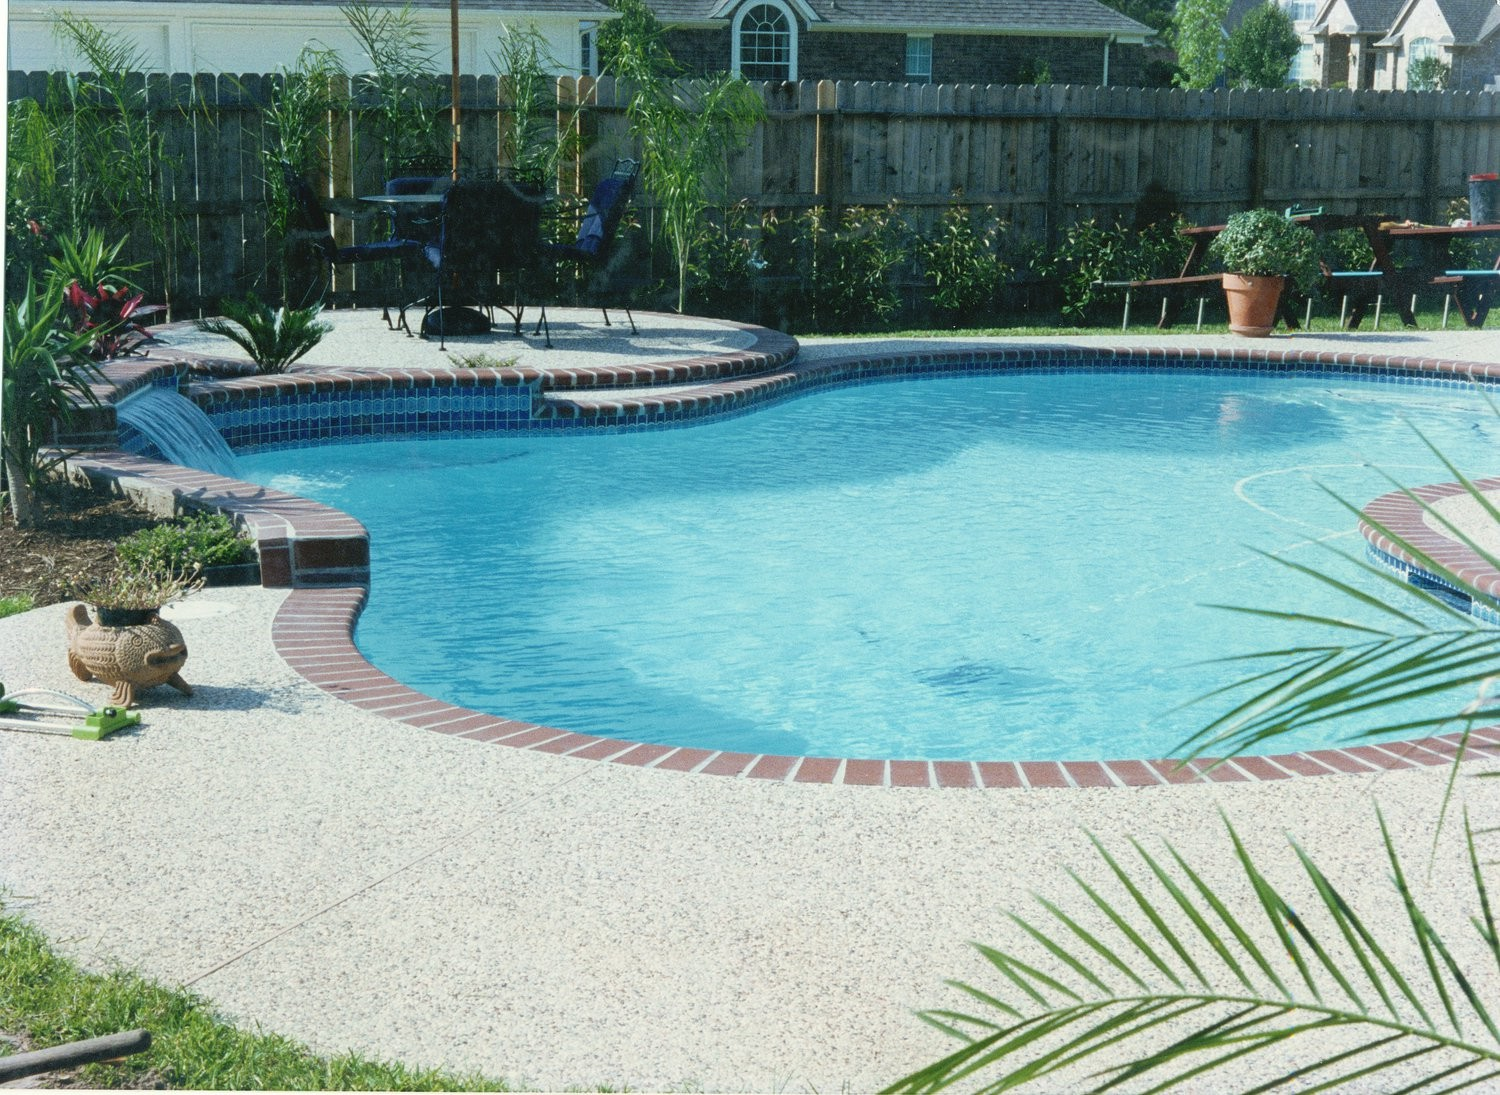 Pool designs spring tomball katy houston cypress for Pool design katy